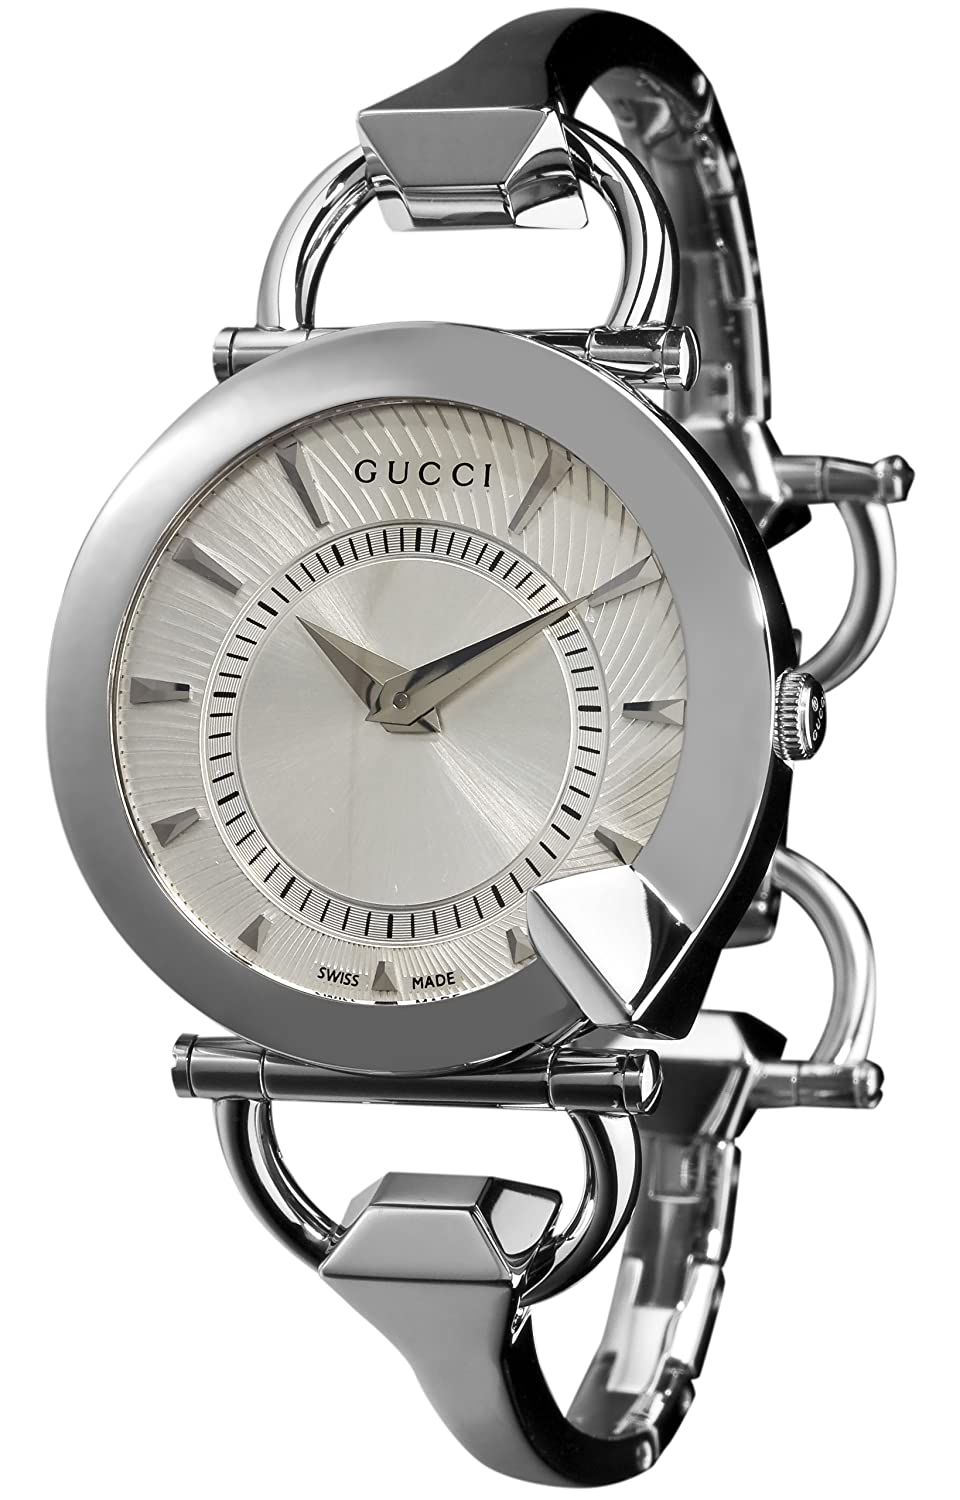 b3550921a6c Gucci Women s YA122508 Chiodo Steel Bangle Silver Helical Dial Watch   Amazon.co.uk  Watches